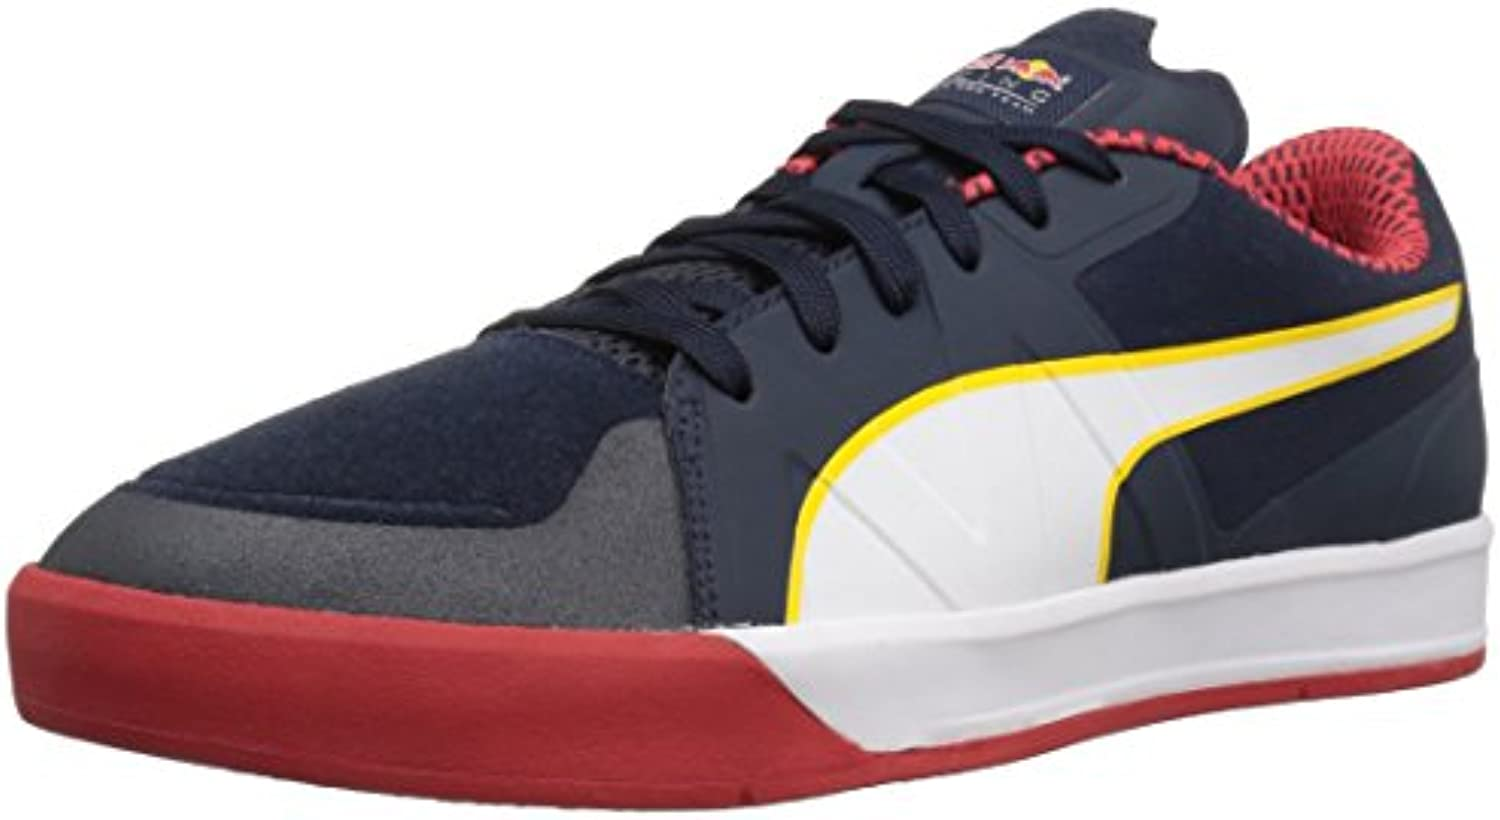 Puma Men's RBR Rider Walking Shoe